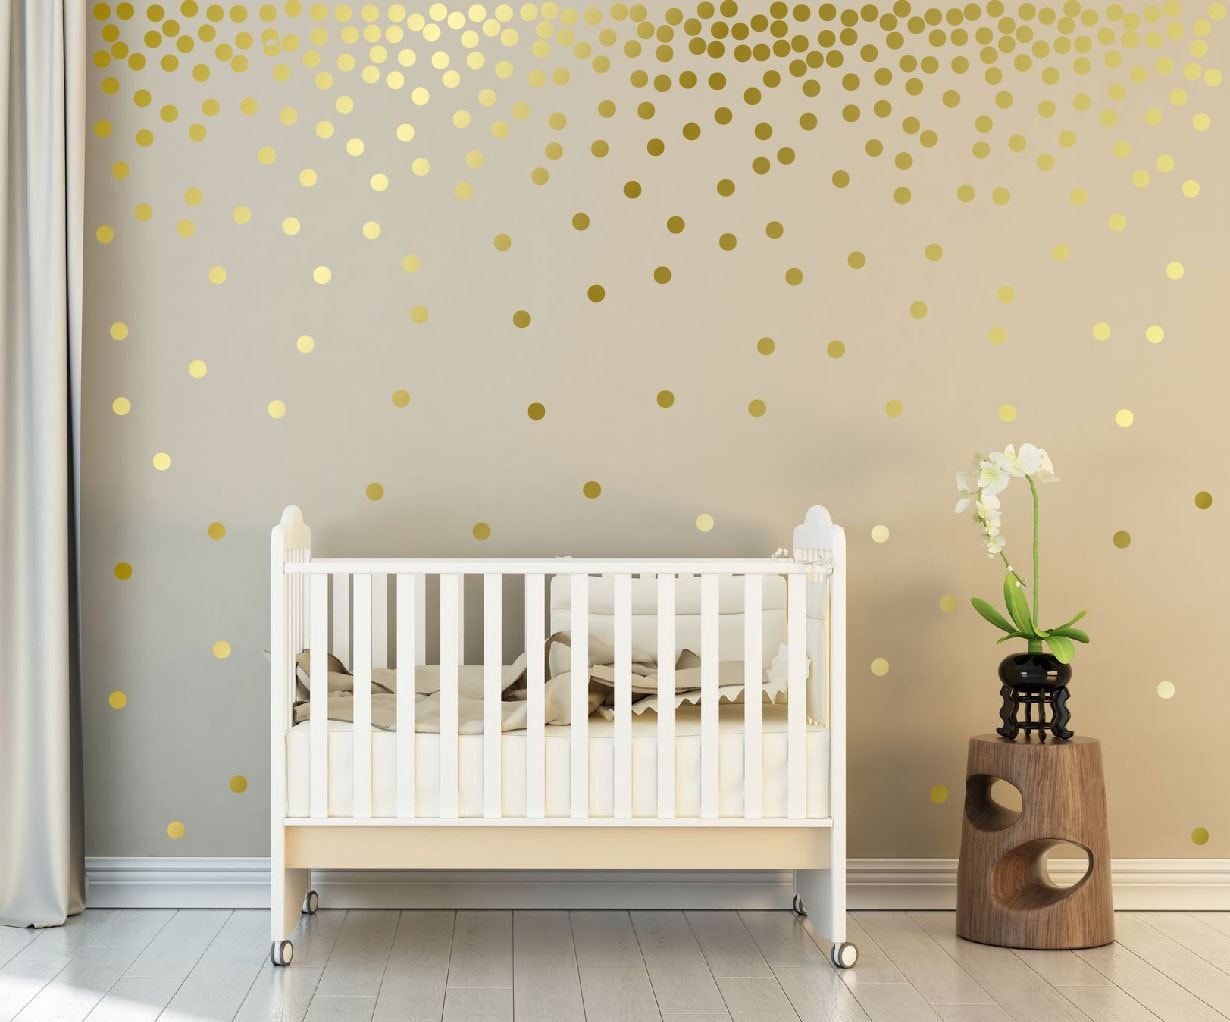 Marvelous Metallic Gold Wall Decals Polka Dots Wall Decor   1 Inch, 1.5,2,2.5,3, 3.5,  4 Inches Circle Vinyl Decals Dot Wall Stickers